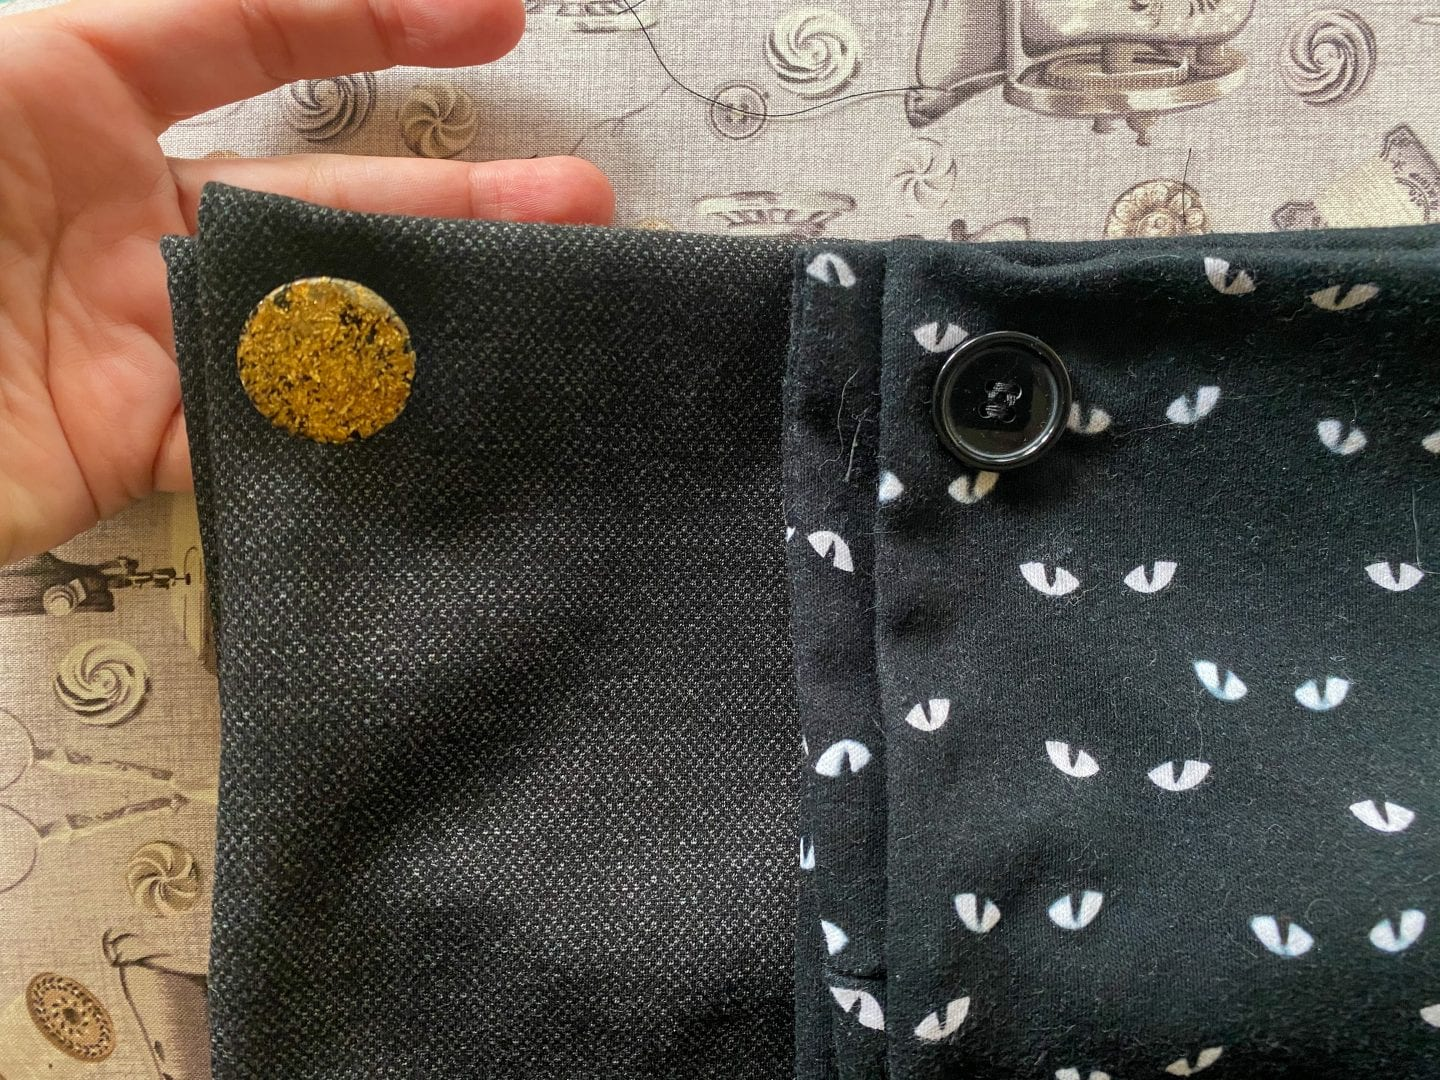 Detail image of both cowls, the tweed one with a golden button, and the glow-in-the-dark one with a black button